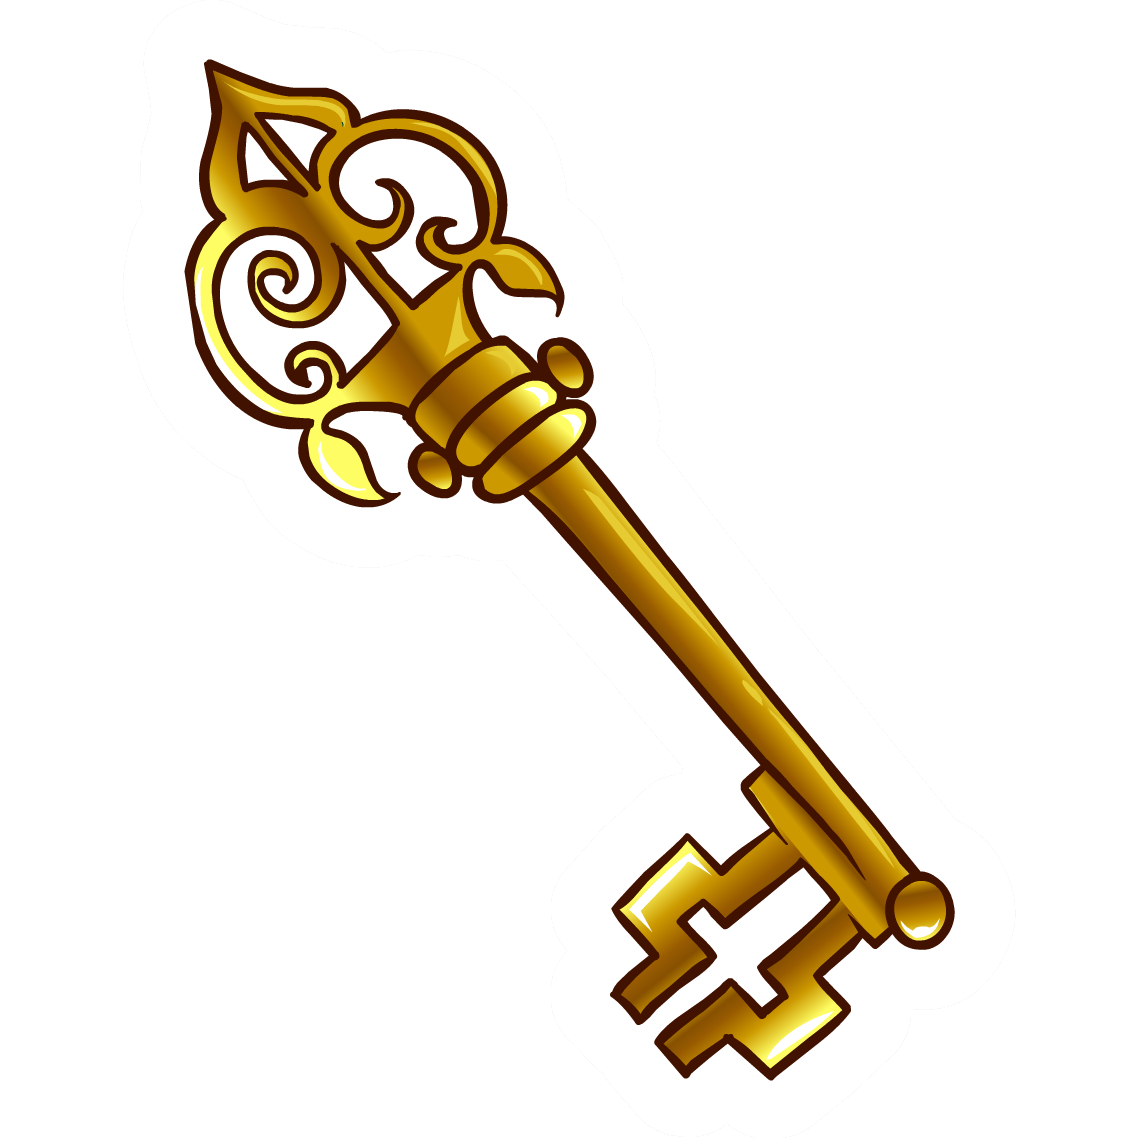 Lock Pick Key >> Skeleton Key Pictures - ClipArt Best